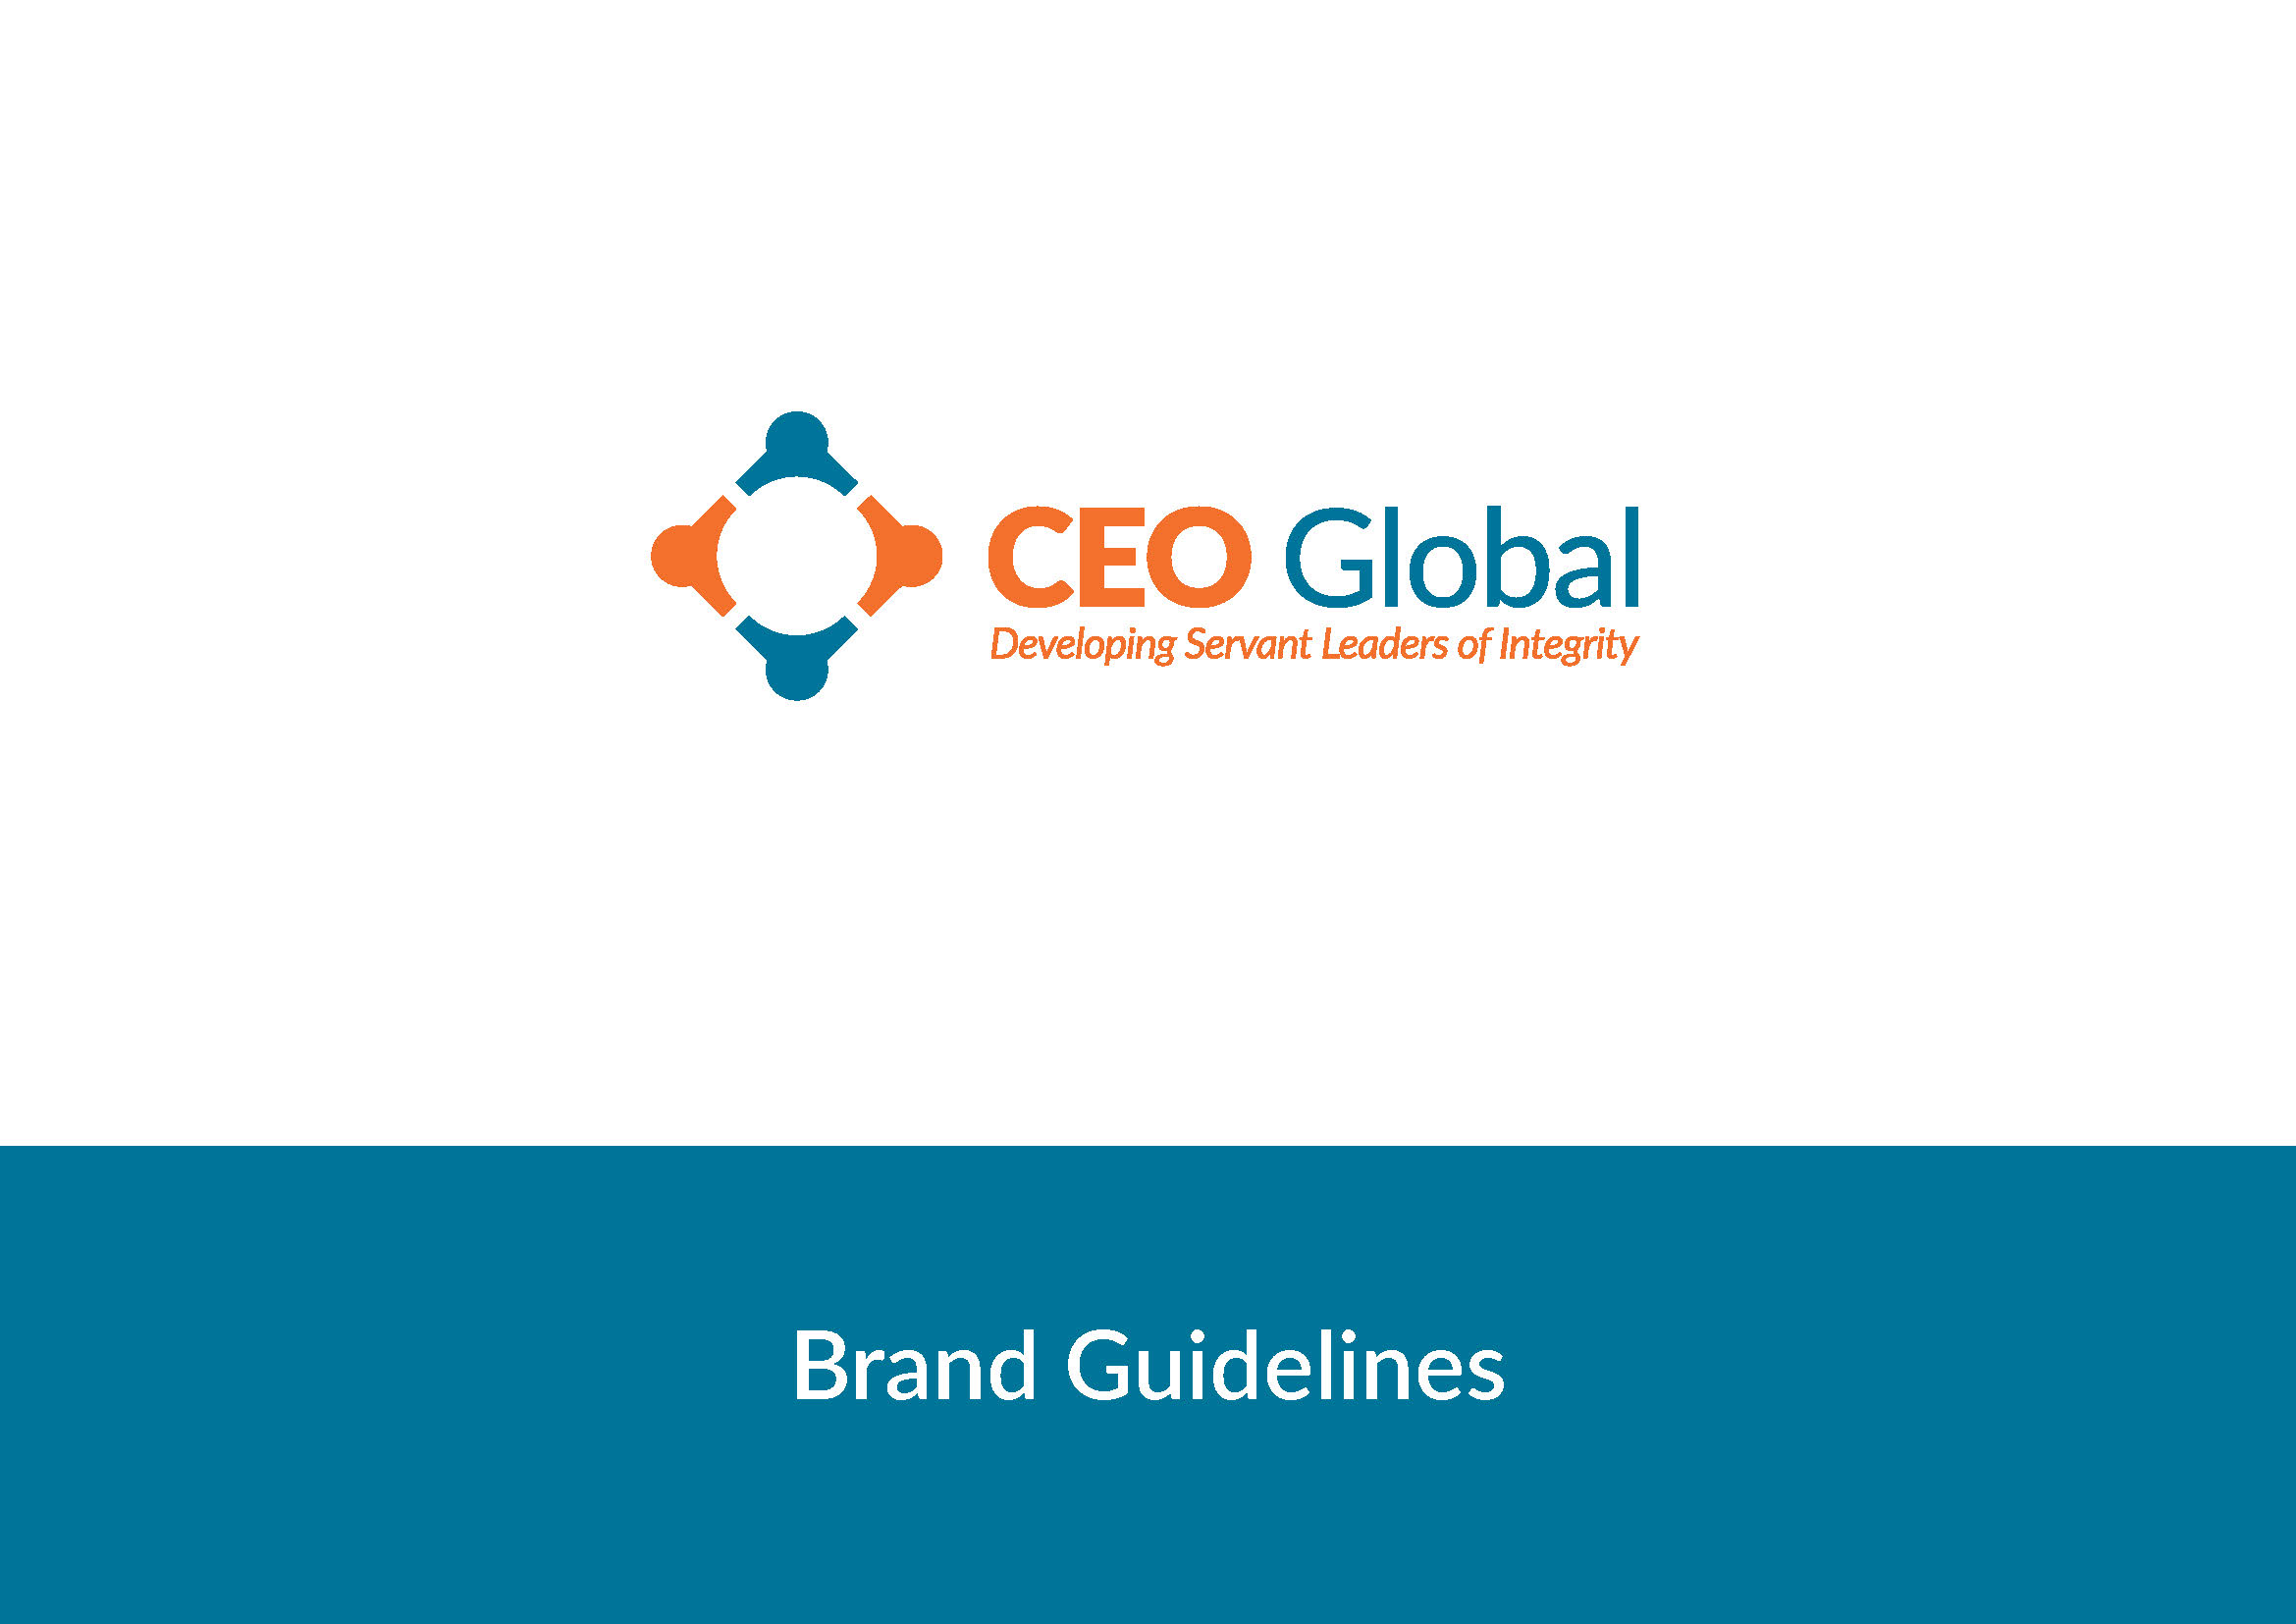 CEO Global Branding Guide colors for web and logo_Page_1.jpg